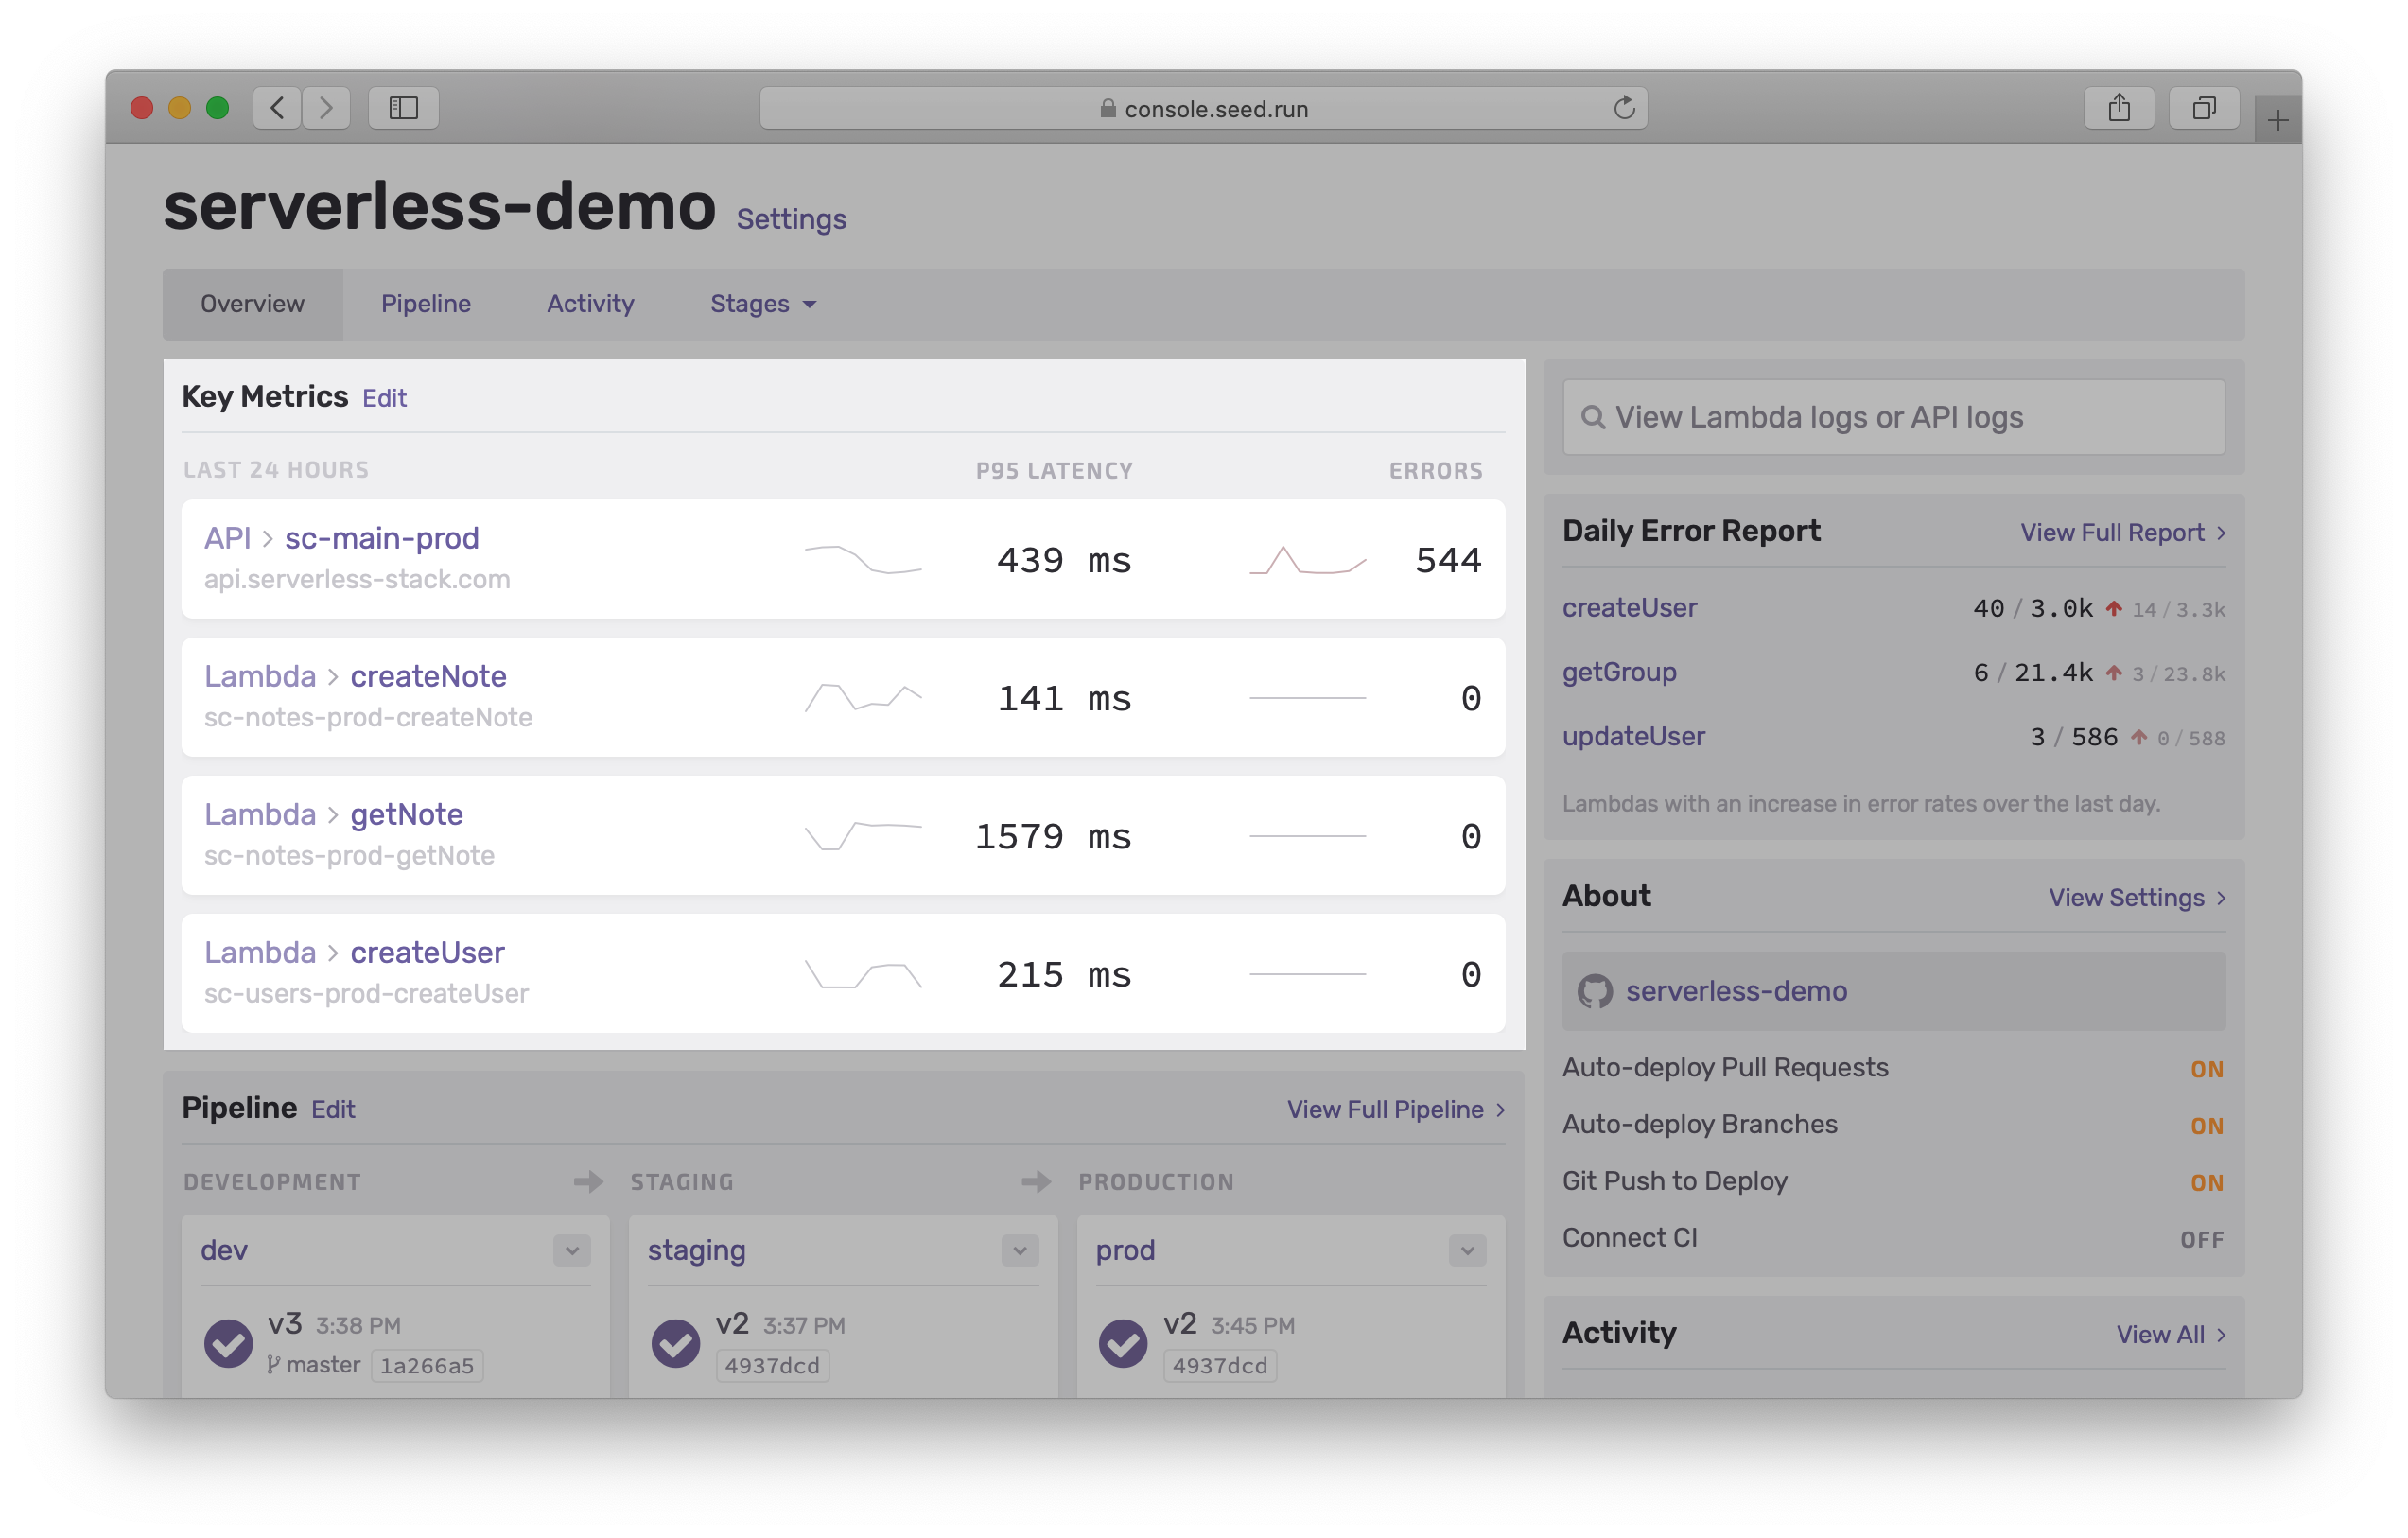 Key metrics in the dashboard